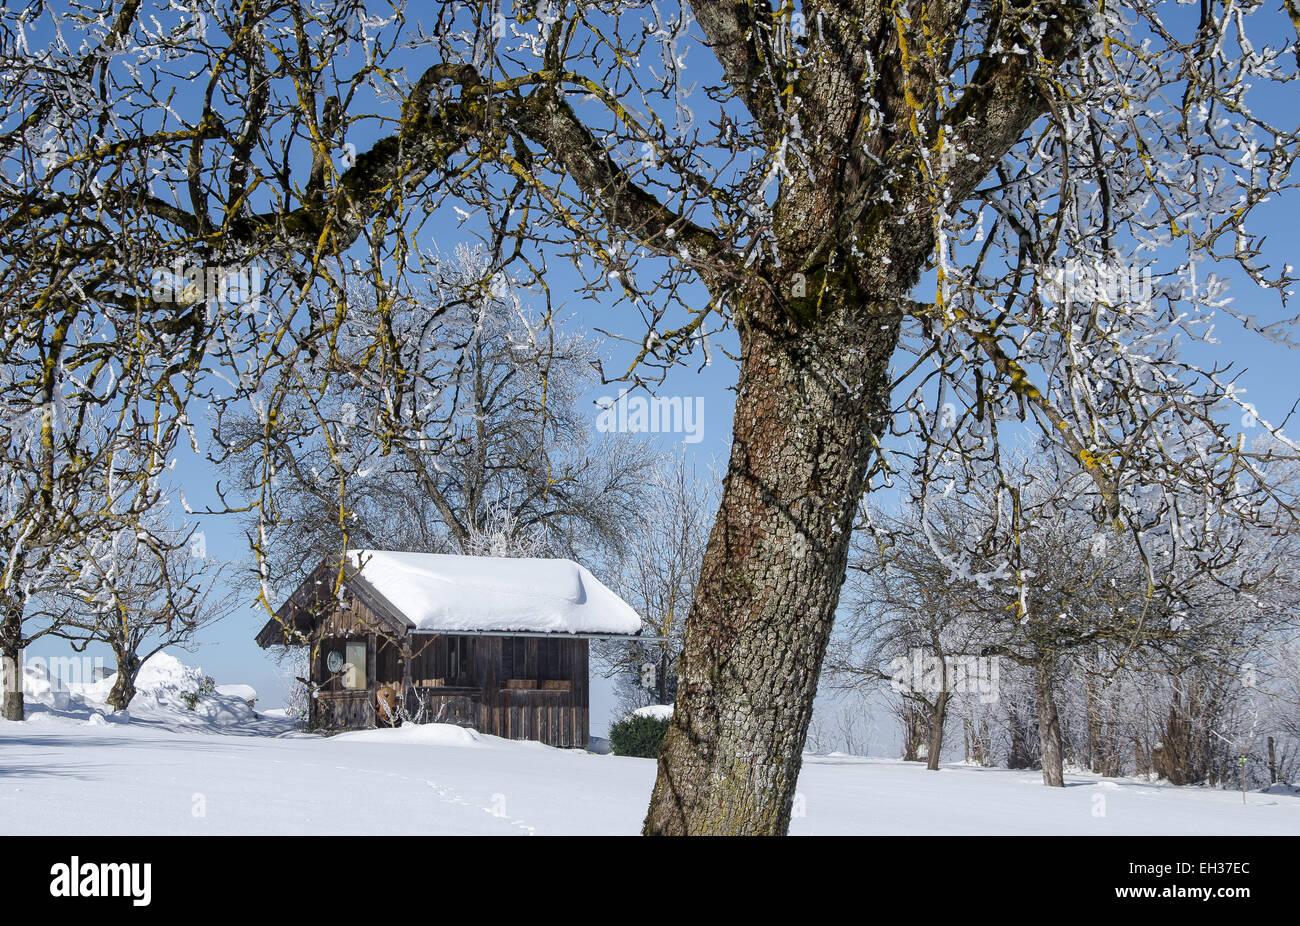 wooden hut on a wintery day with a blue sky and hoar frost on fruit trees - Stock Image